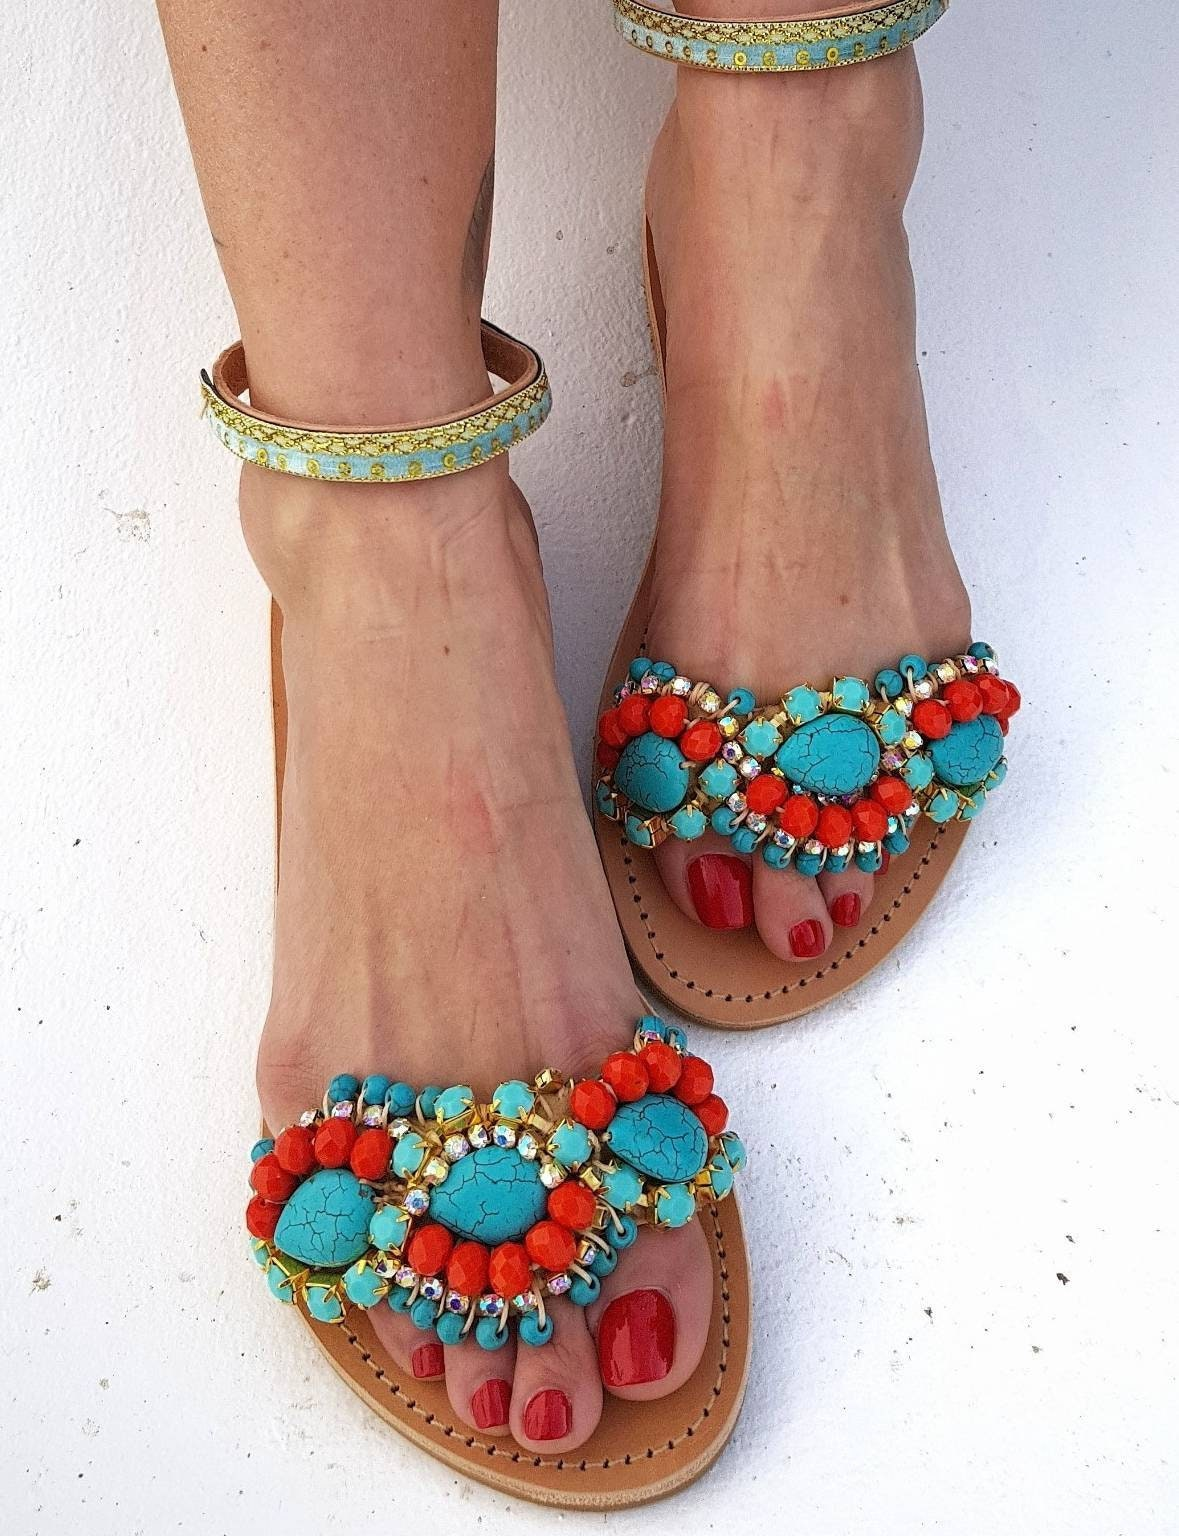 c1cd16f12967b1 Greek sandals handmade boho sandals ethnic luxury women shoes ...